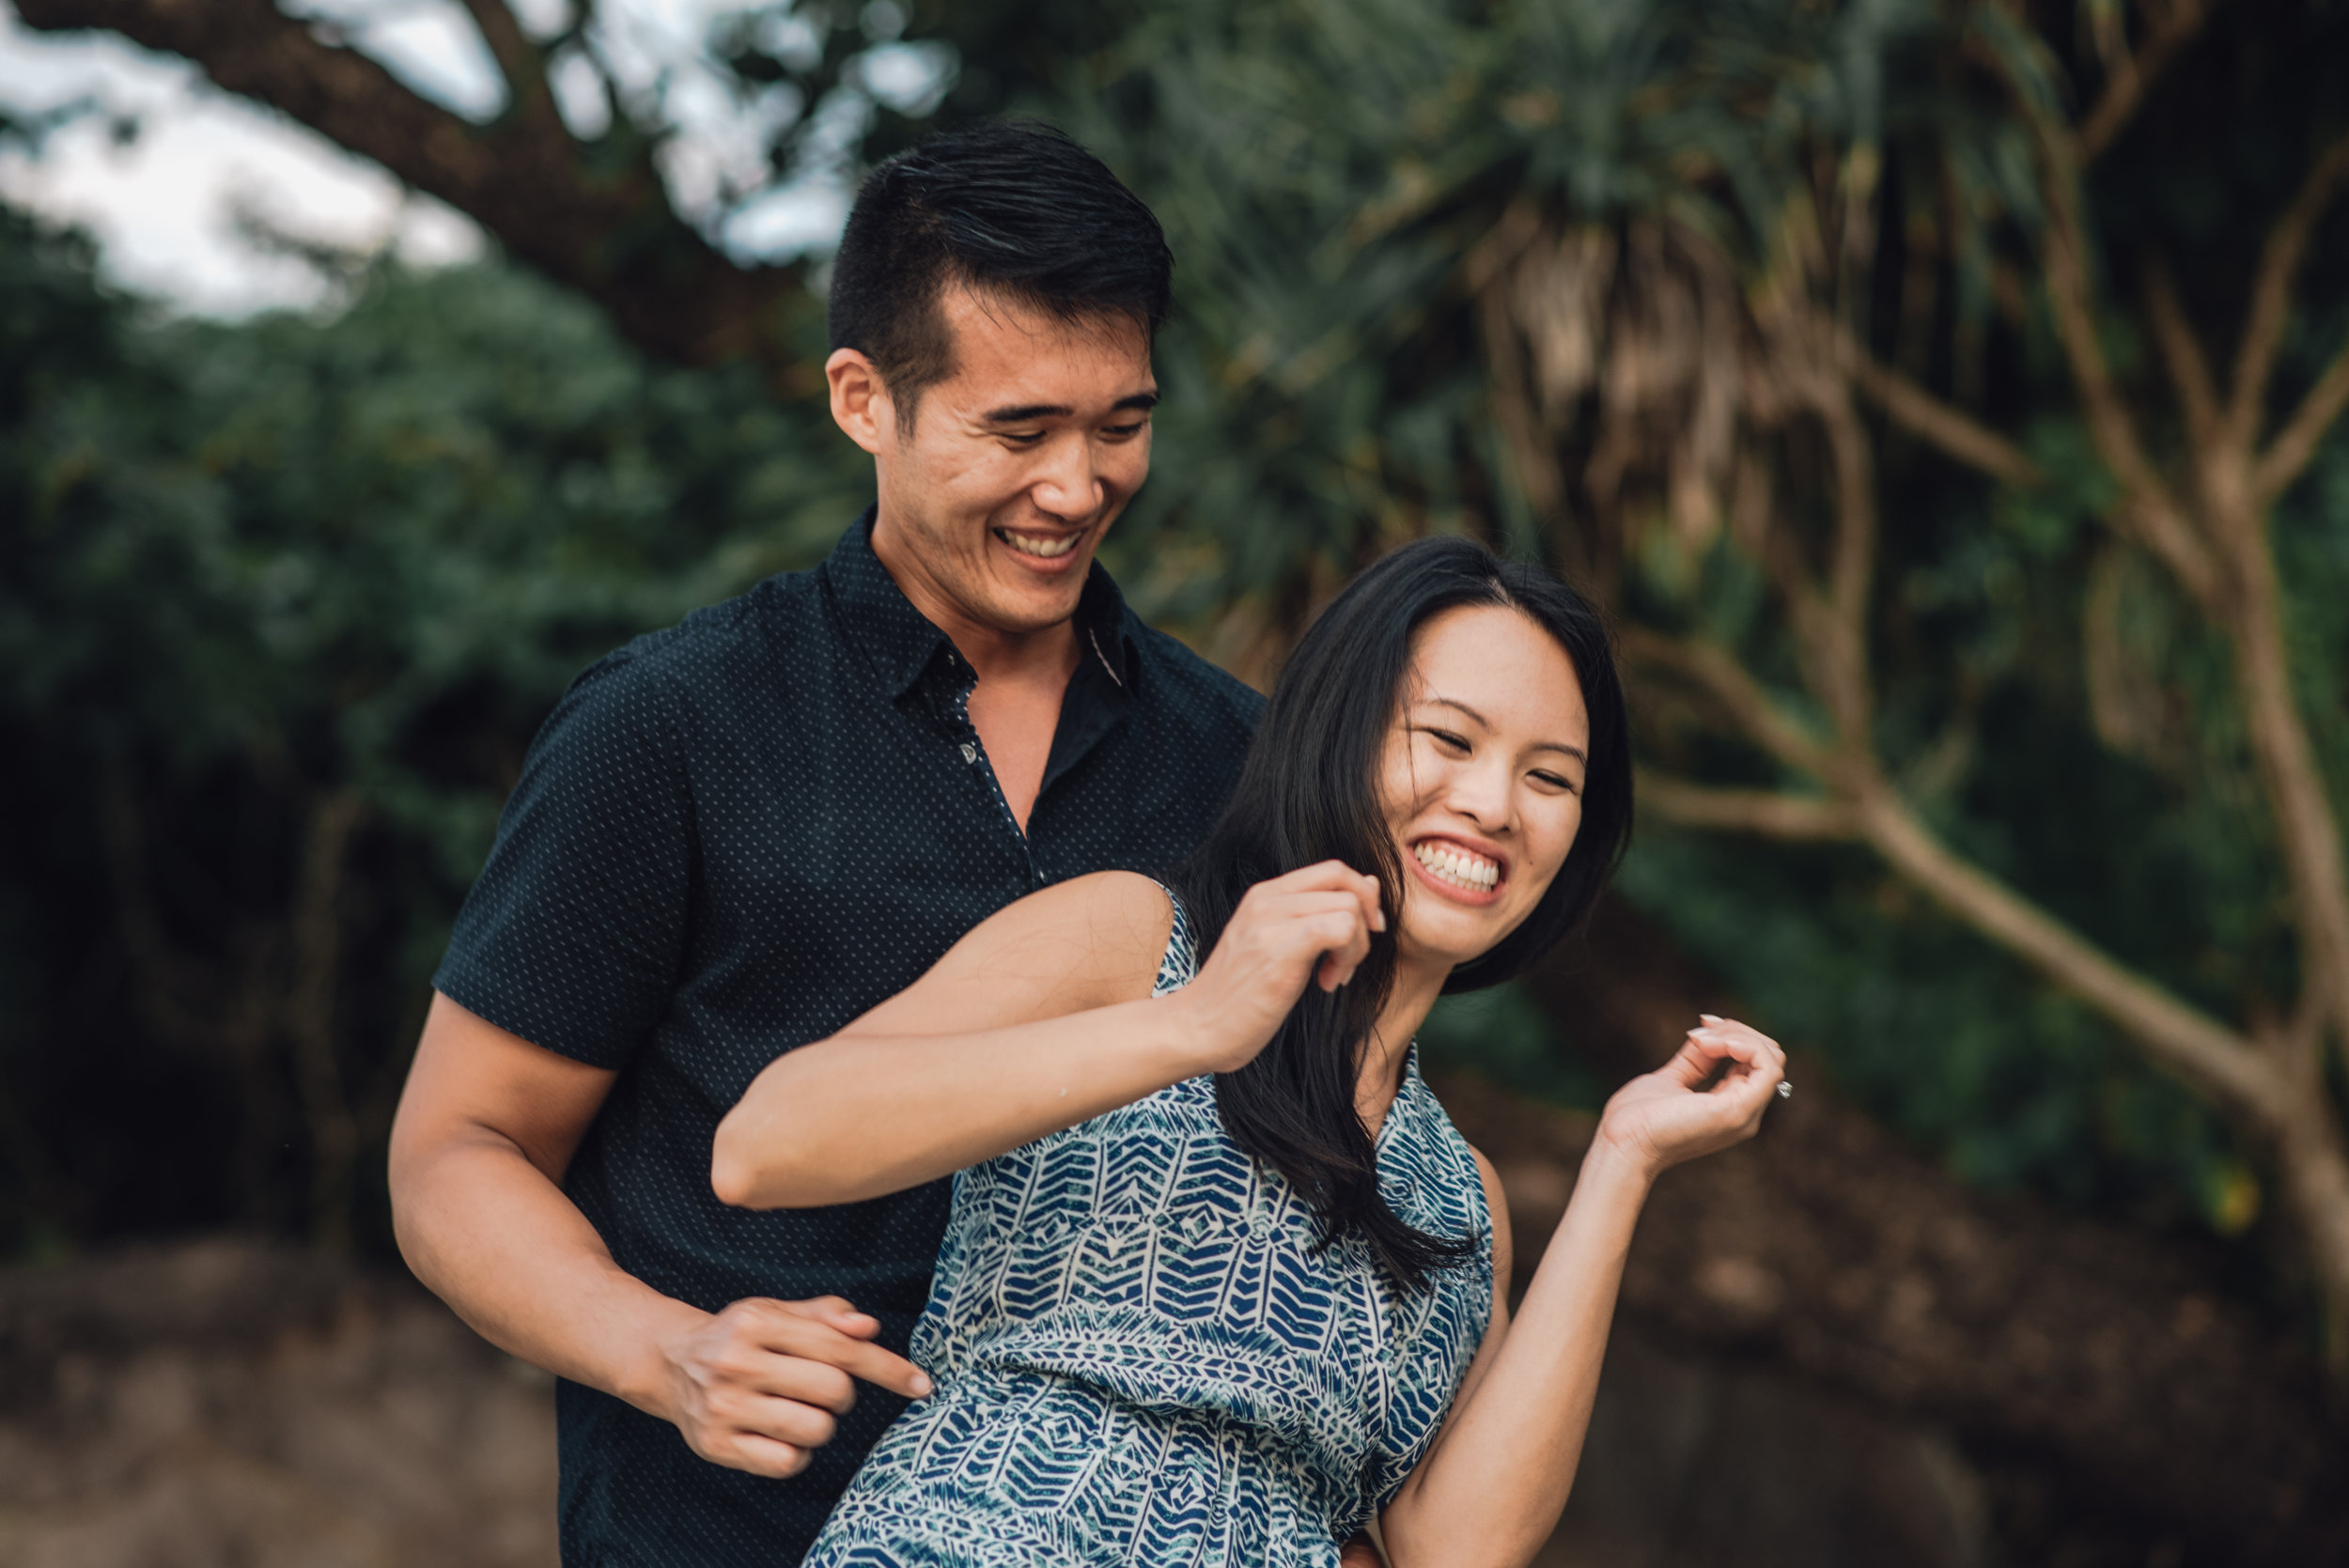 Main and Simple Photography_2016_Engagement_Thailand_B+E_day1-513.jpg